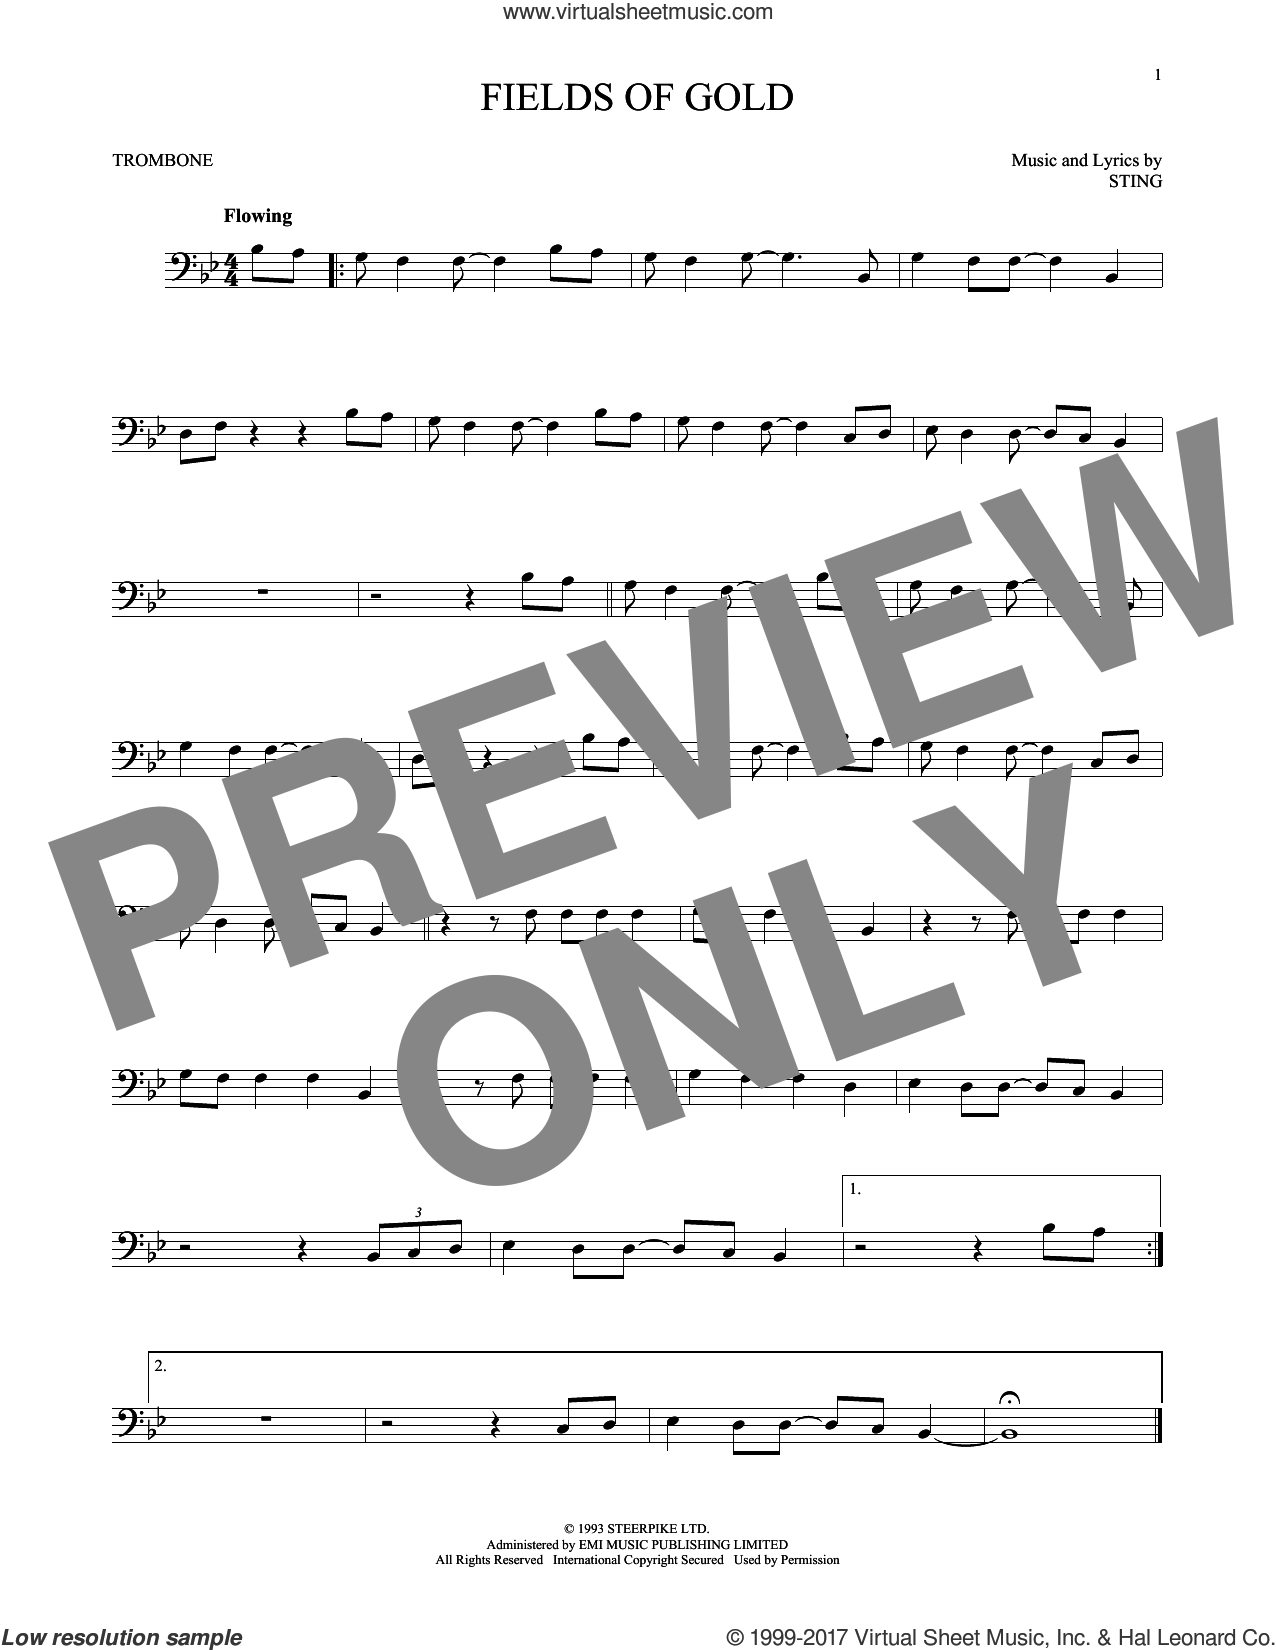 Fields Of Gold sheet music for trombone solo by Sting, intermediate skill level